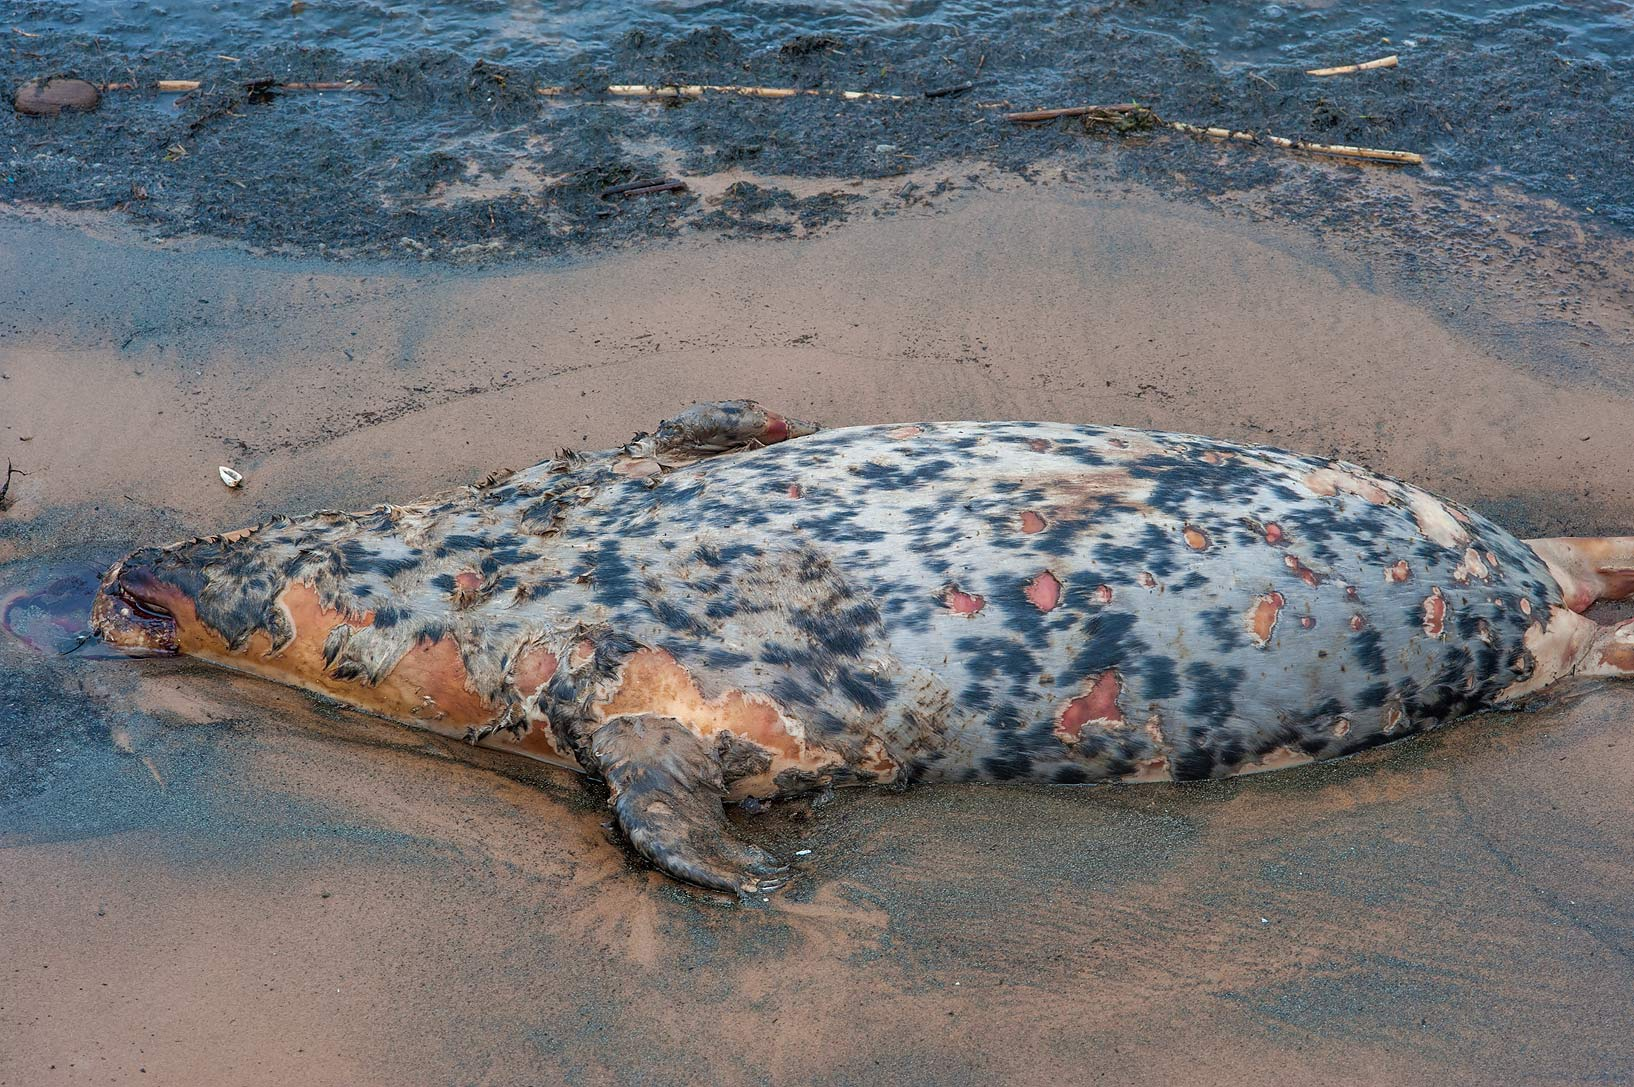 Grey seal washed up on a beach near Sestroretsk, a suburb of St.Petersburg, Russia